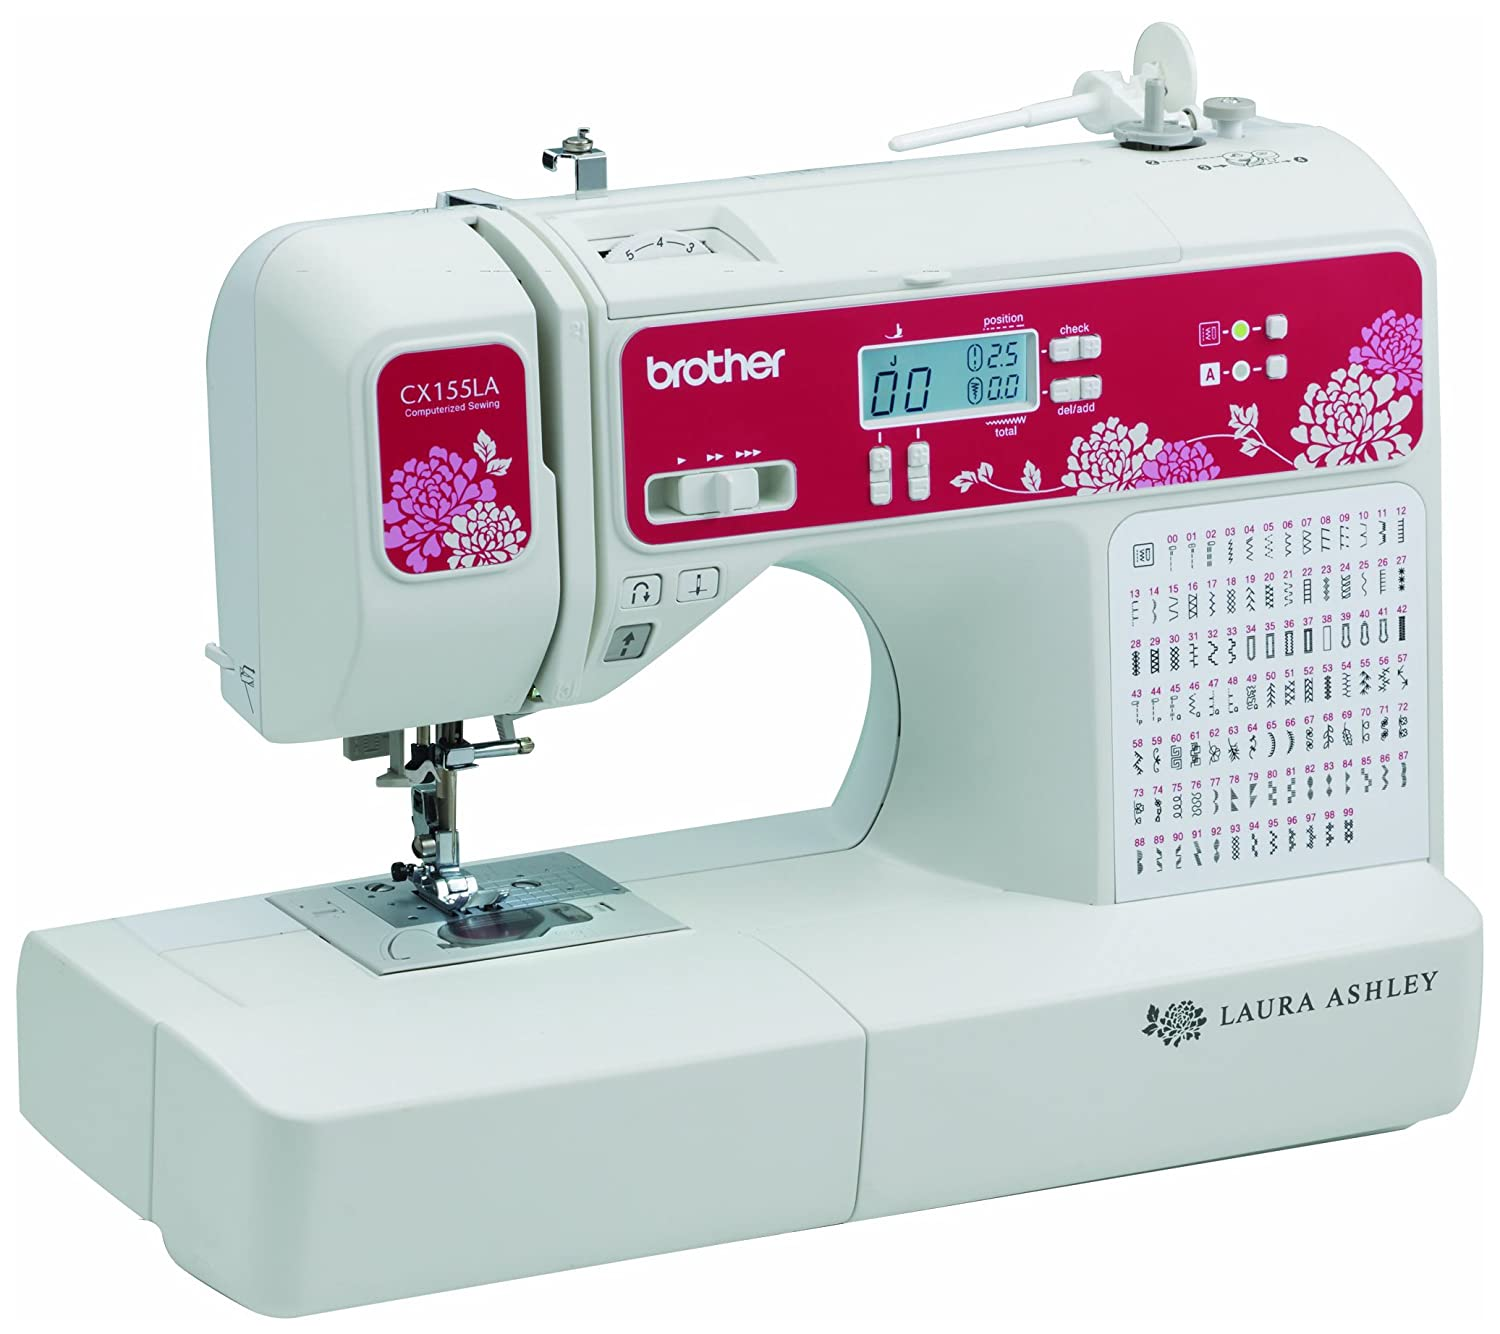 Brother Sewing Laura Ashley CX155LA Limited Edition Sewing & Quilting Machine with Built-in Sewing Font